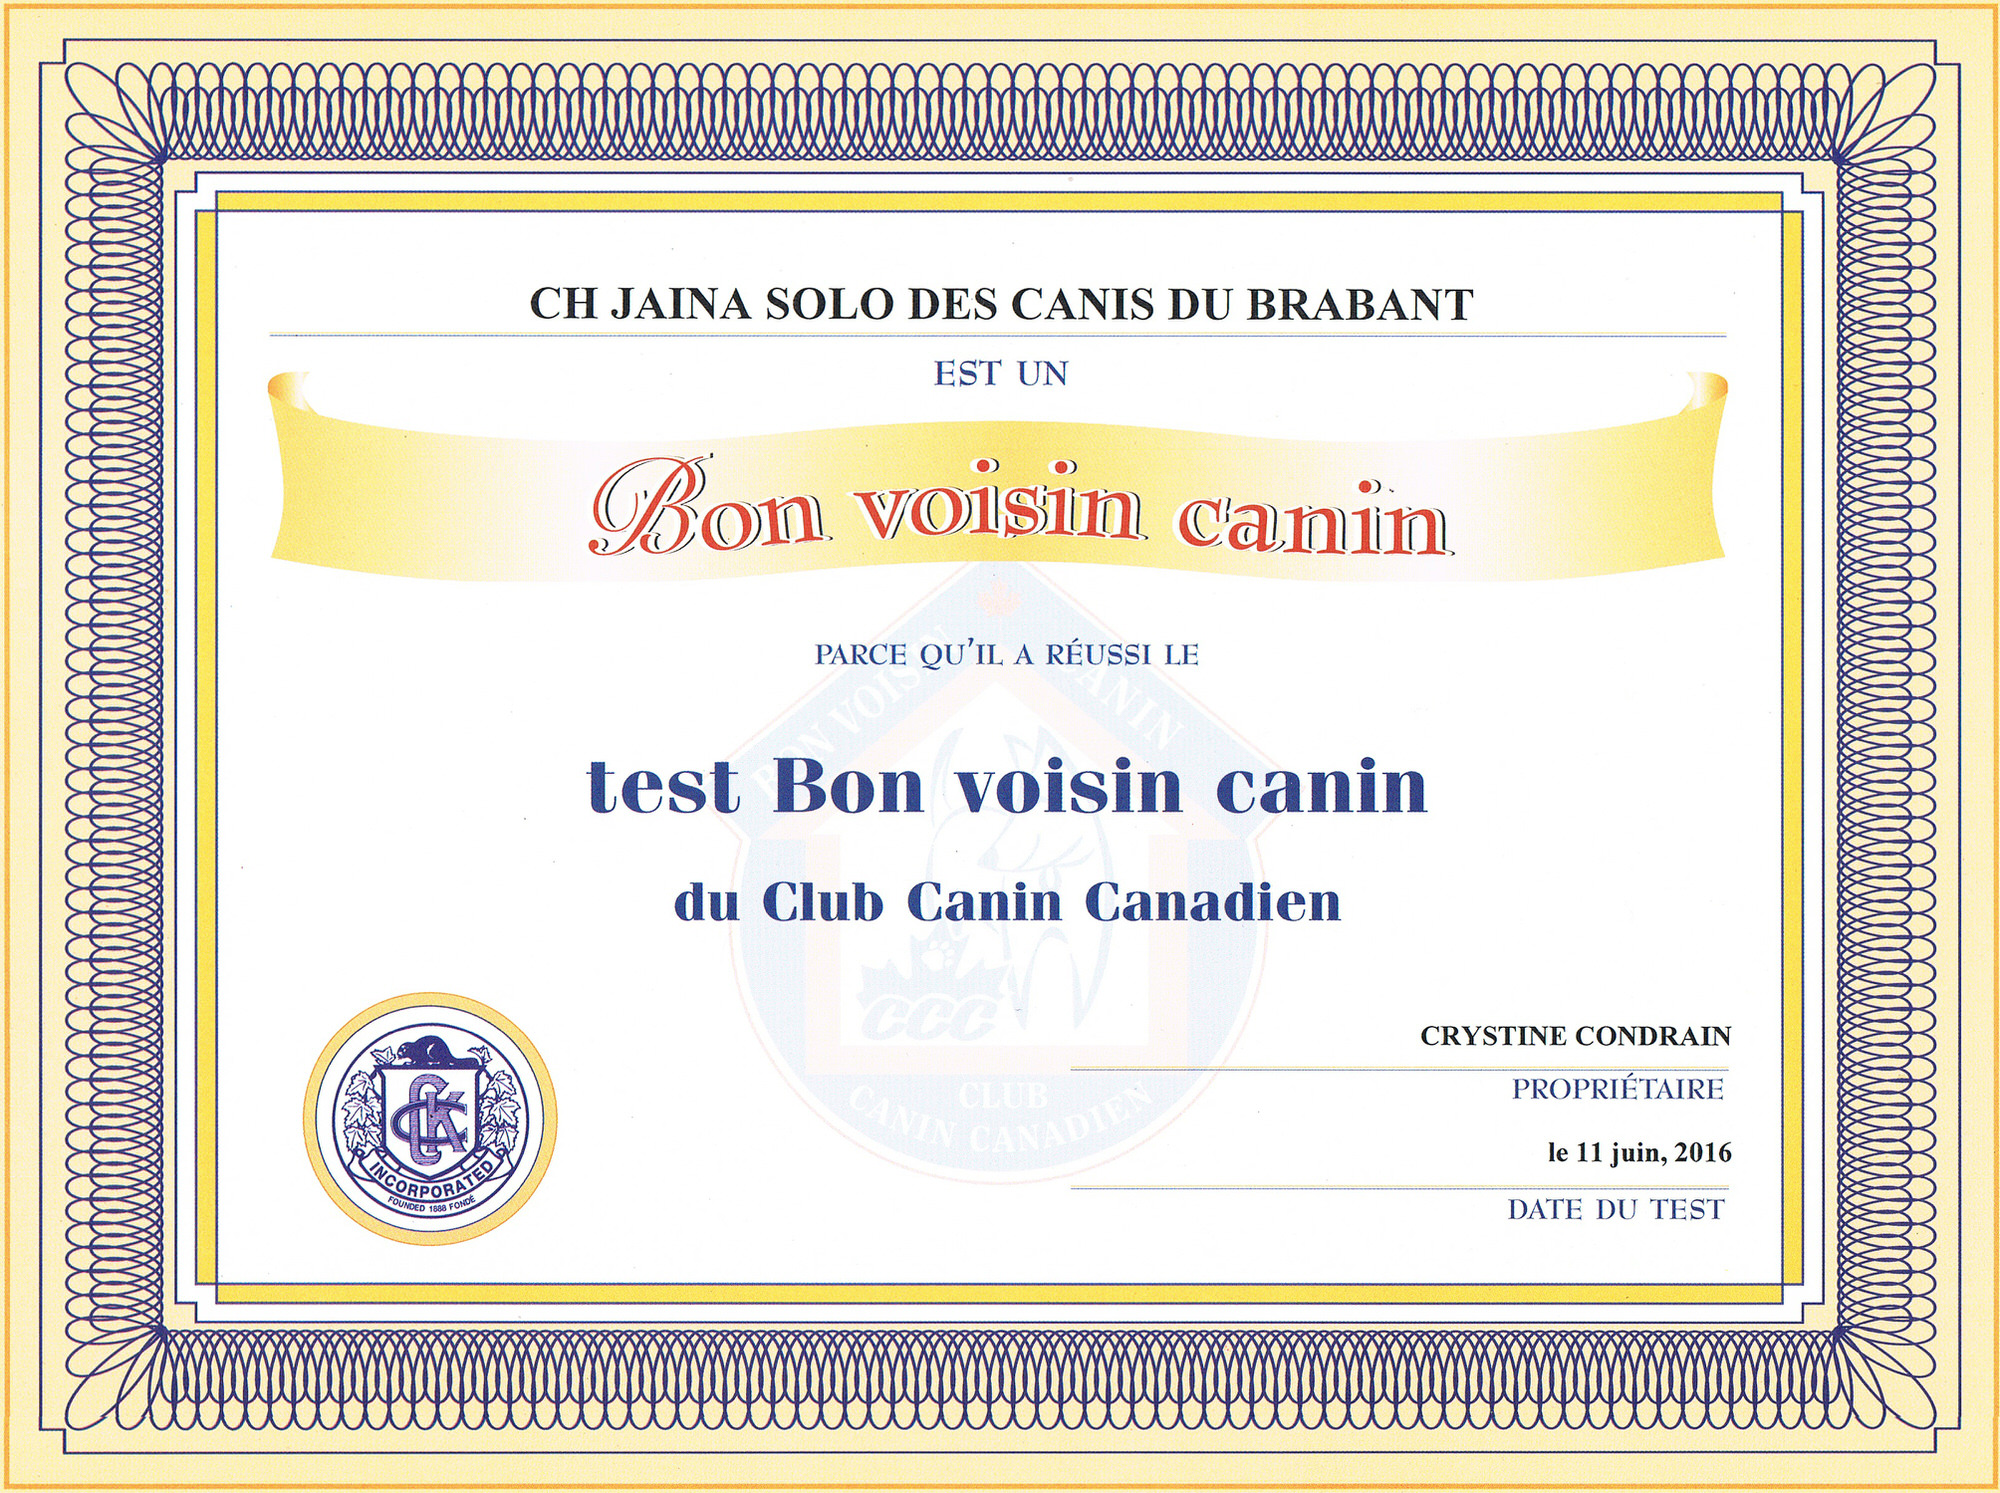 Jaina's Certificate - CKC Canine Good Neighbor (CGN)